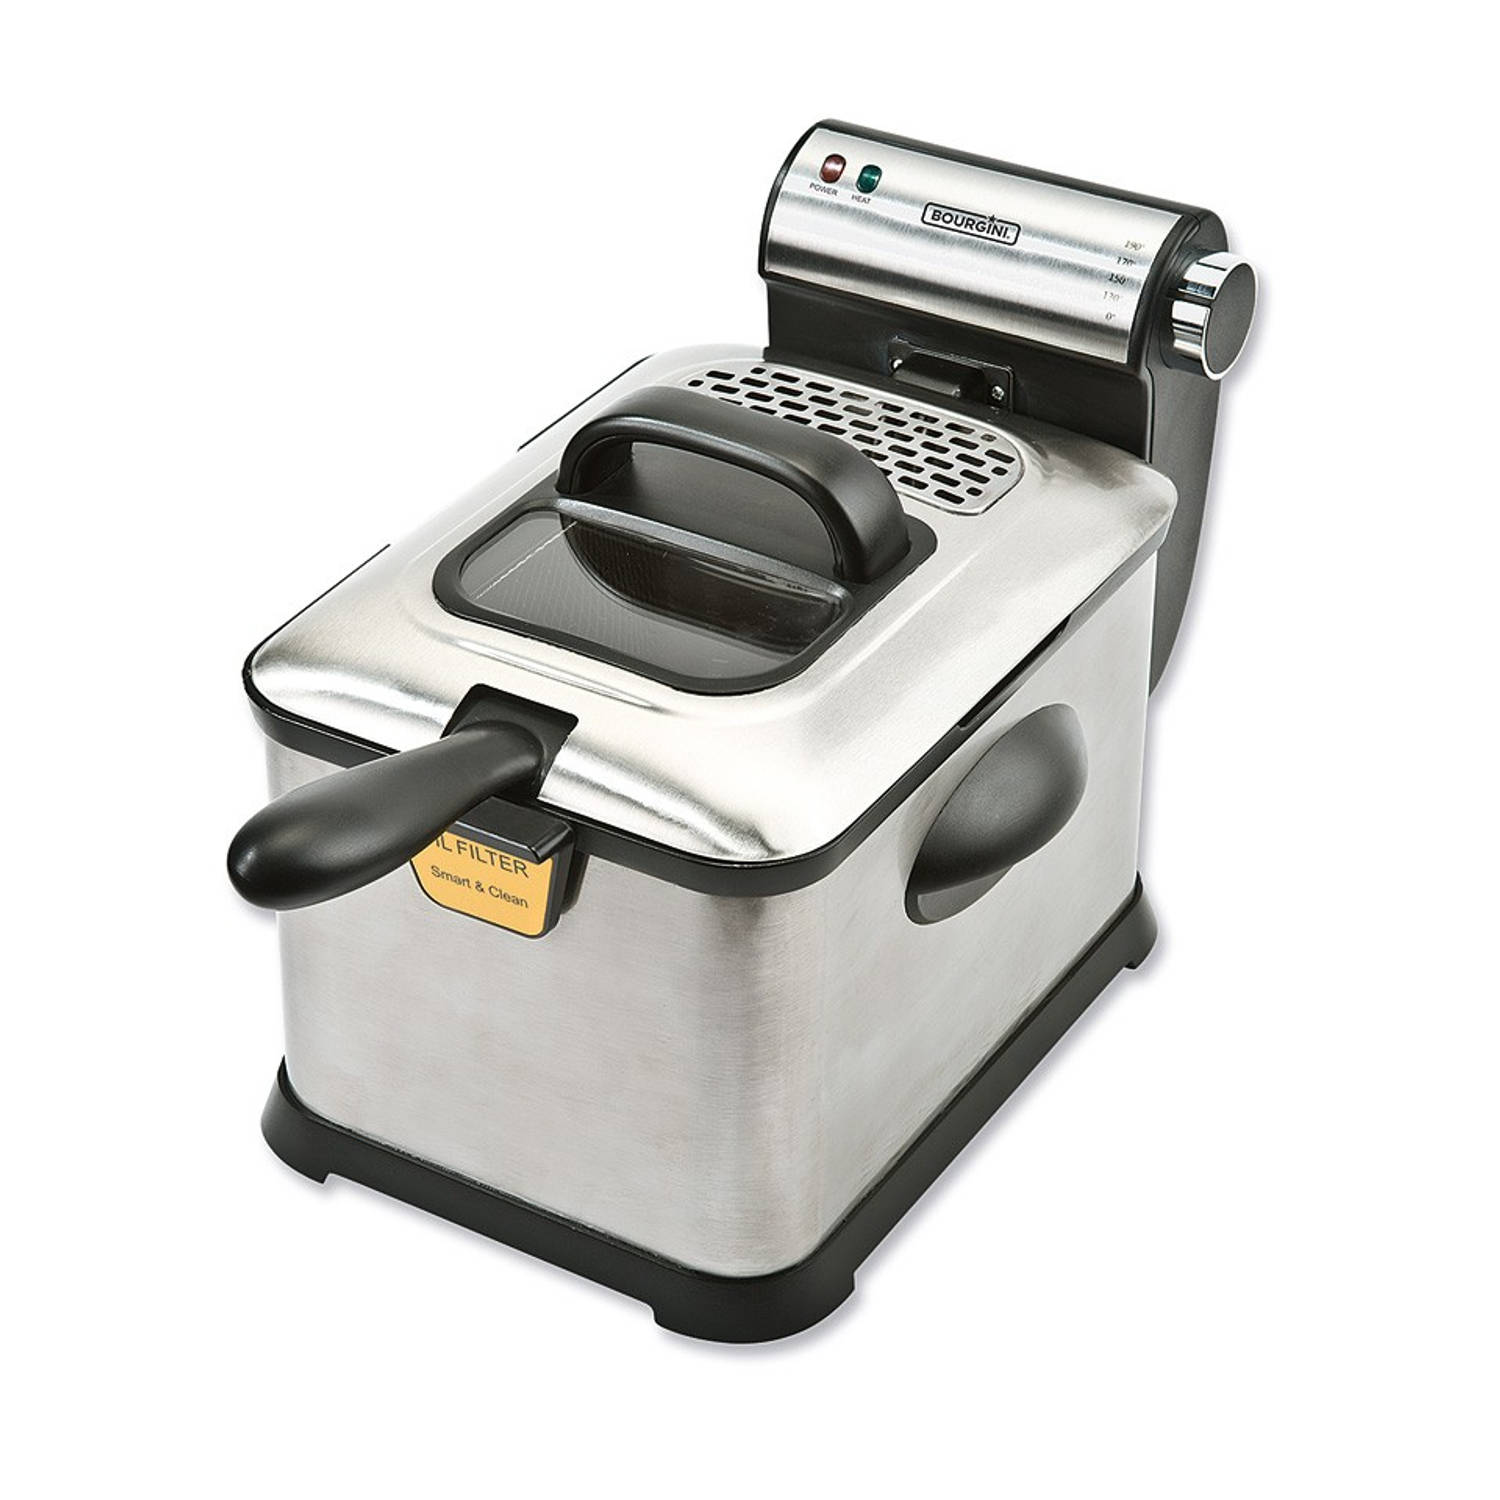 Bourgini friteuse Classic Fryer Deluxe 3 liter